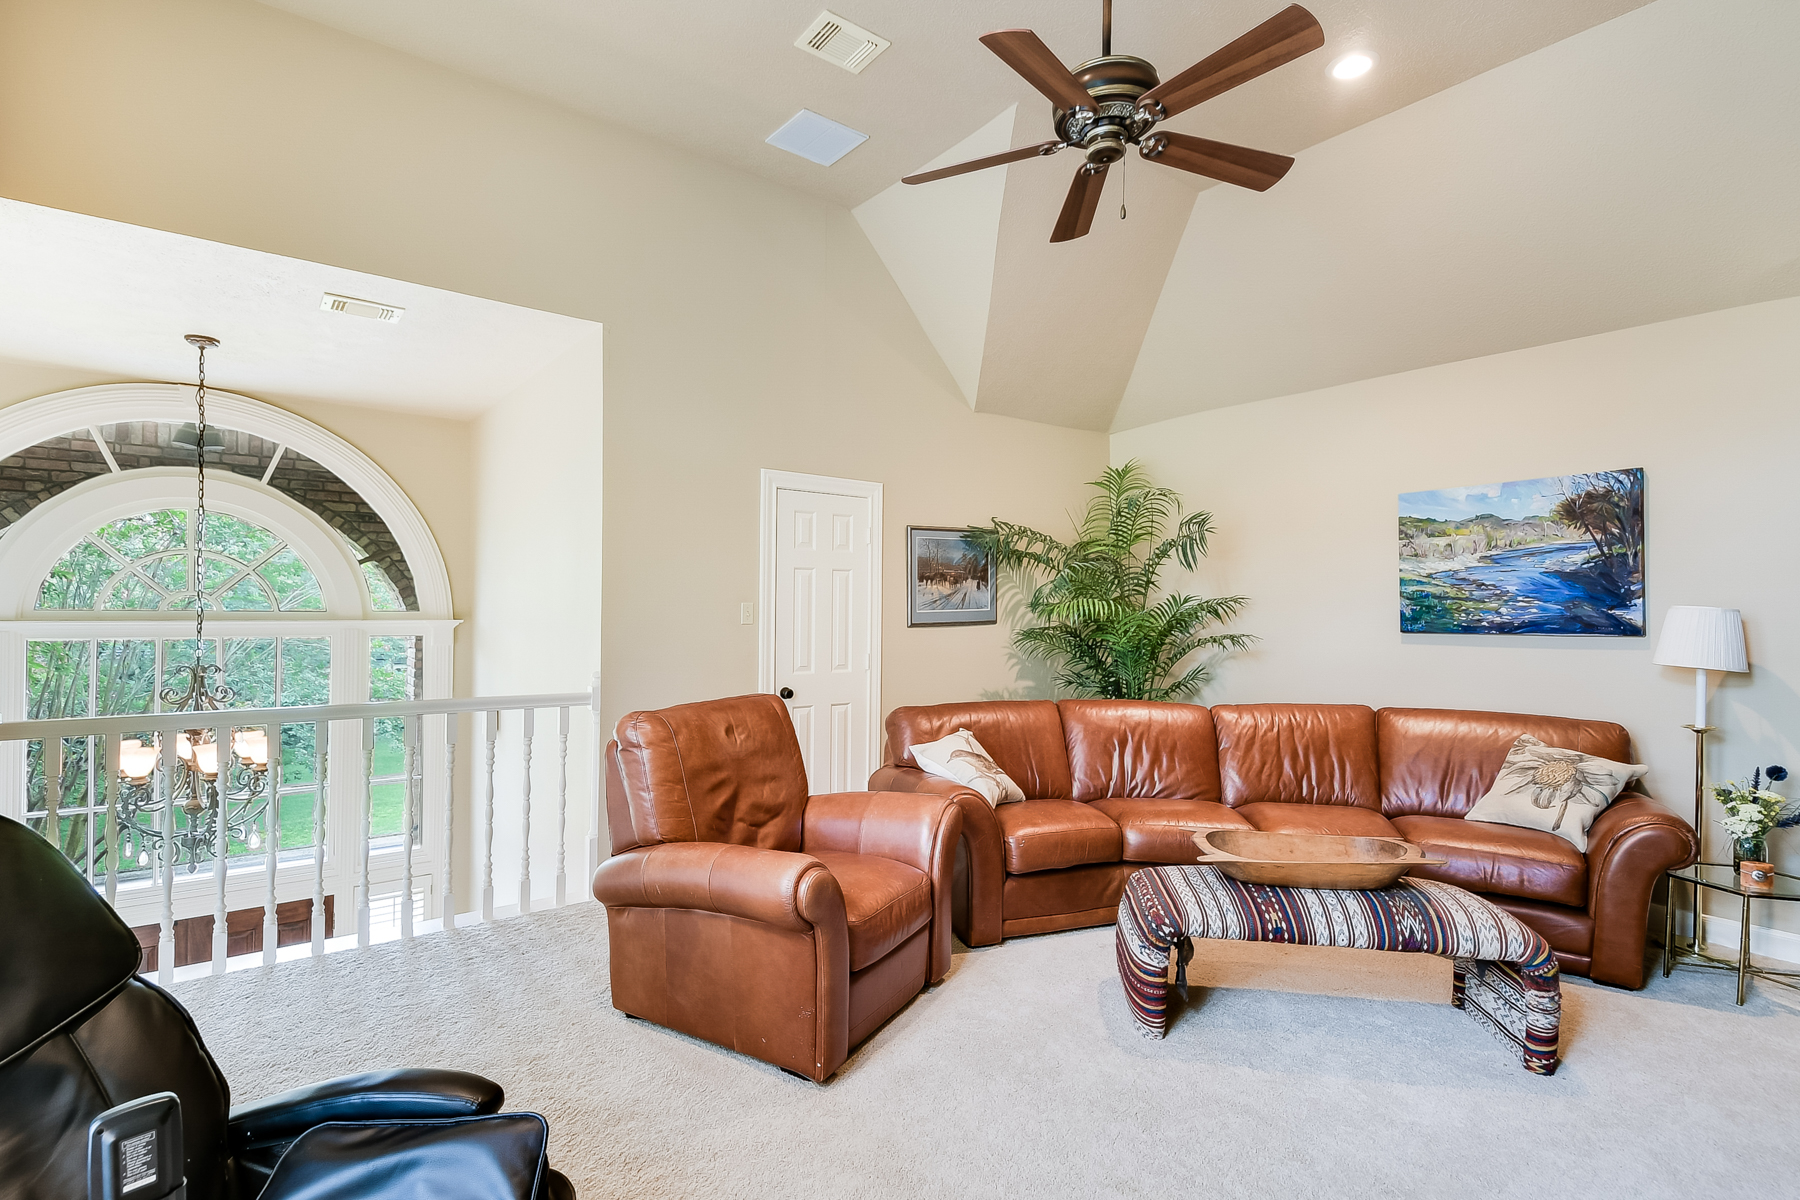 Additional photo for property listing at Beautful Garden Home in The Dominion 21 Burnham Glen San Antonio, Texas 78257 United States